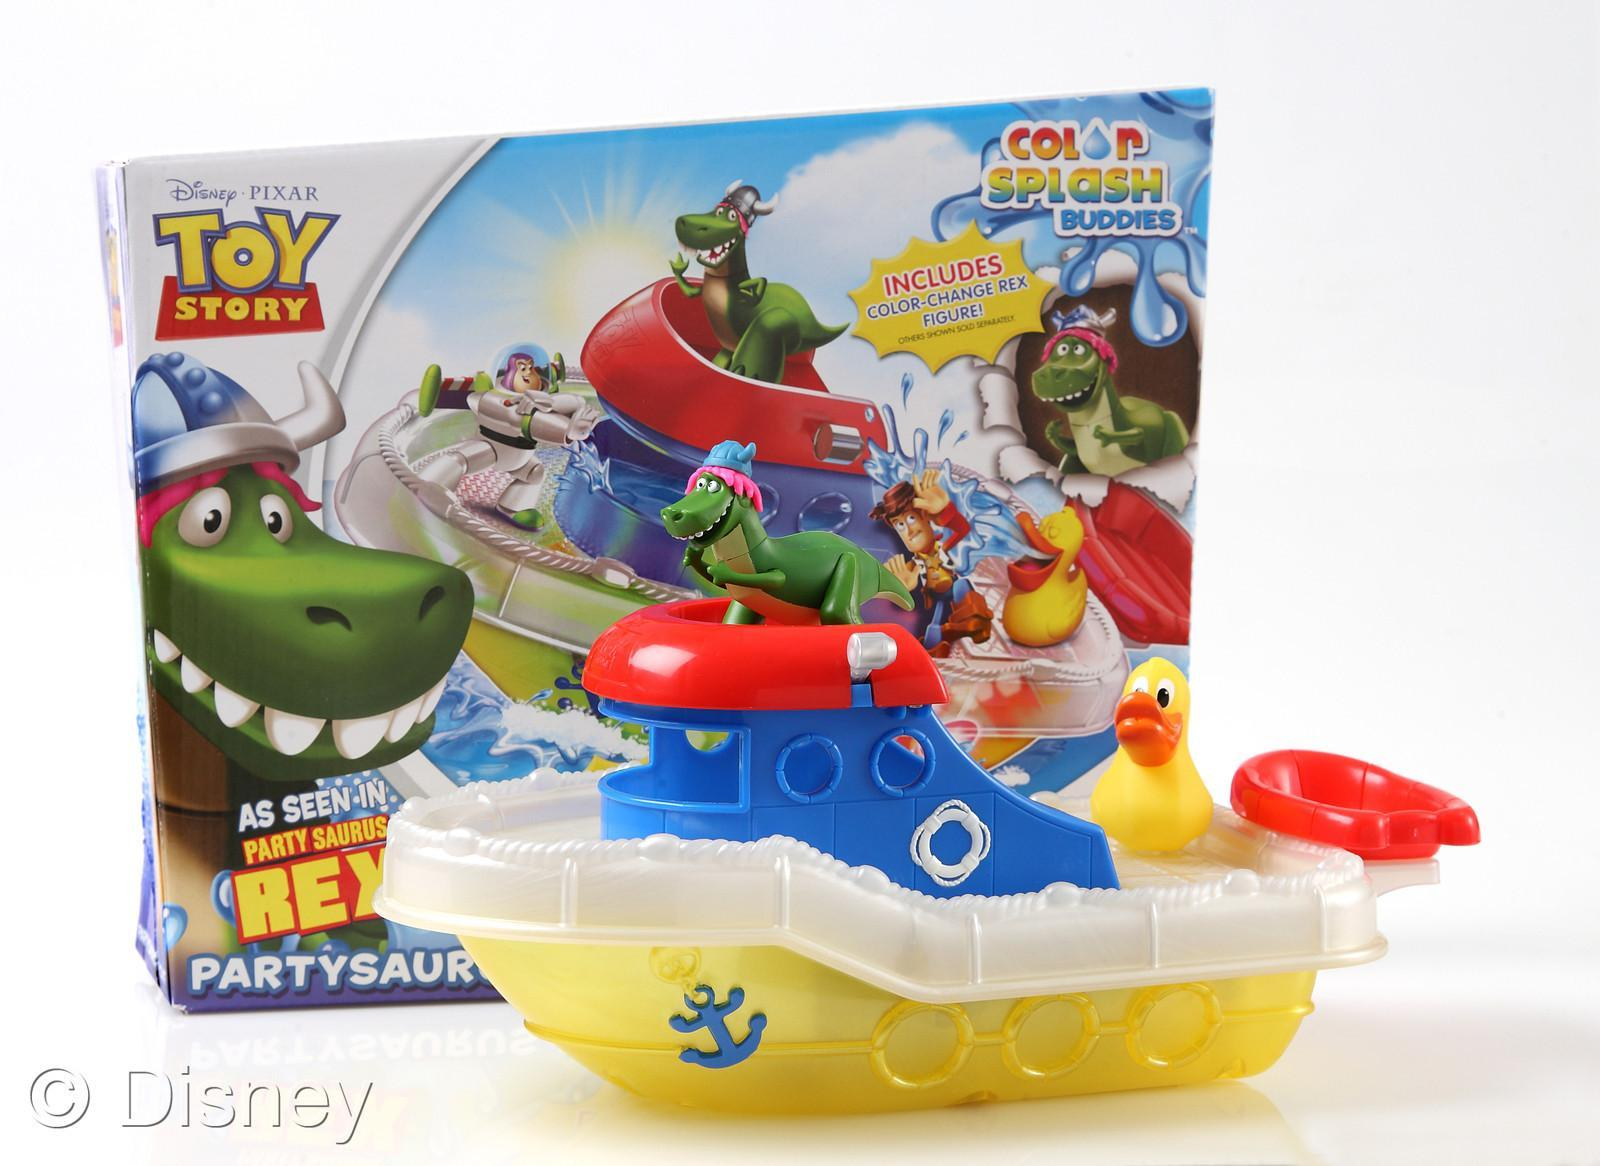 Toy Story Toons Partysaurus Rex 255658595 large africaupdates.com: News: Nigeria: Police Free 32 Pregnant Girls From 'Baby ...